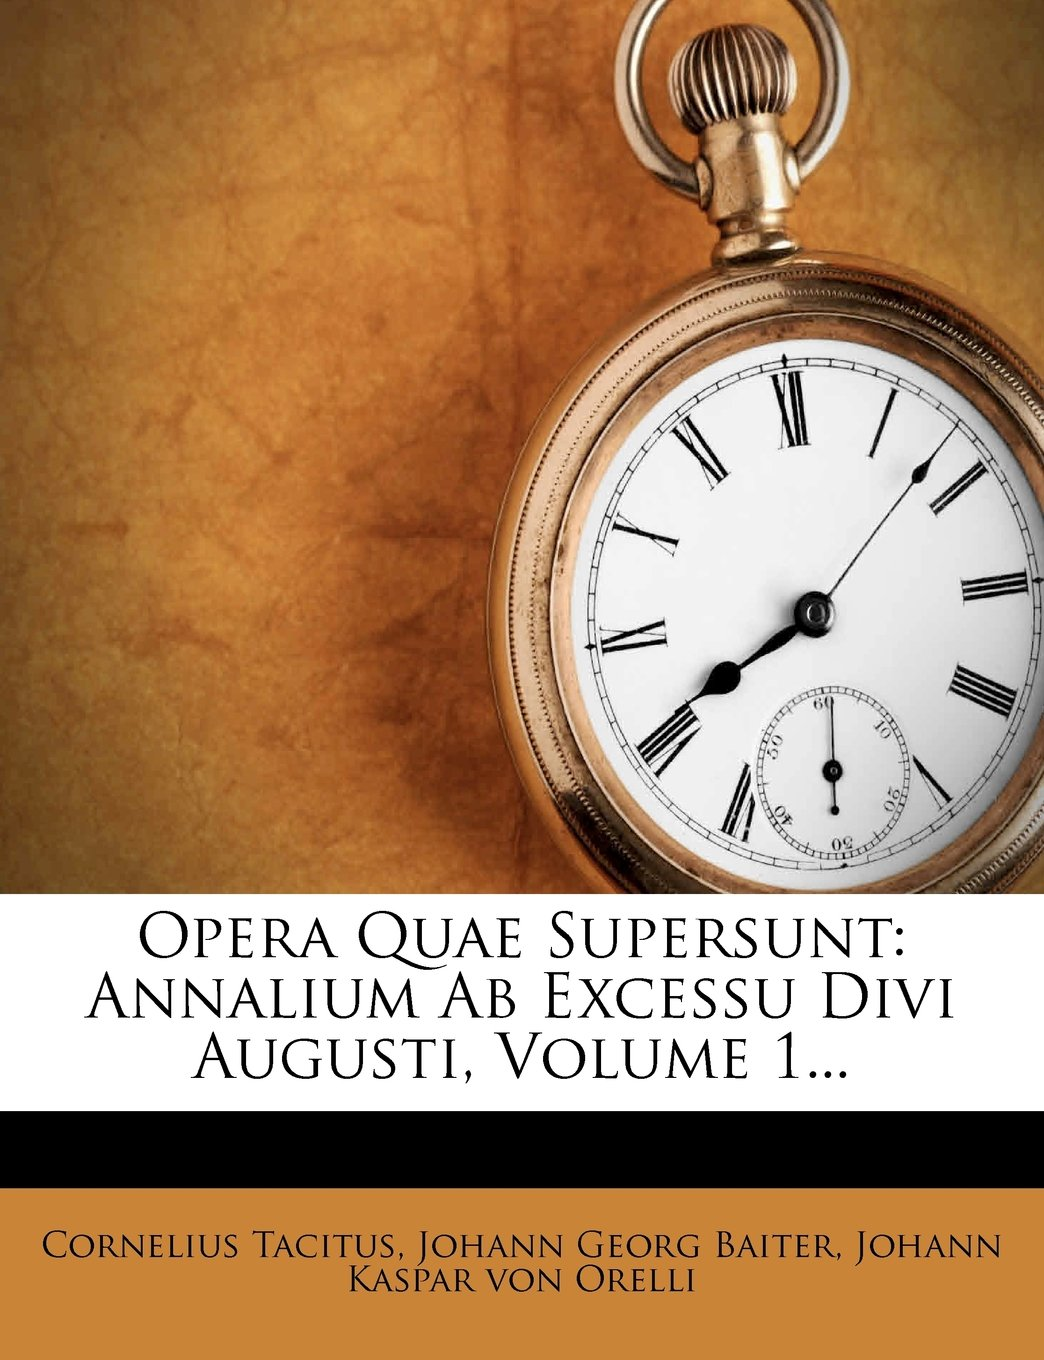 Download Opera Quae Supersunt: Annalium Ab Excessu Divi Augusti, Volume 1... (Latin Edition) pdf